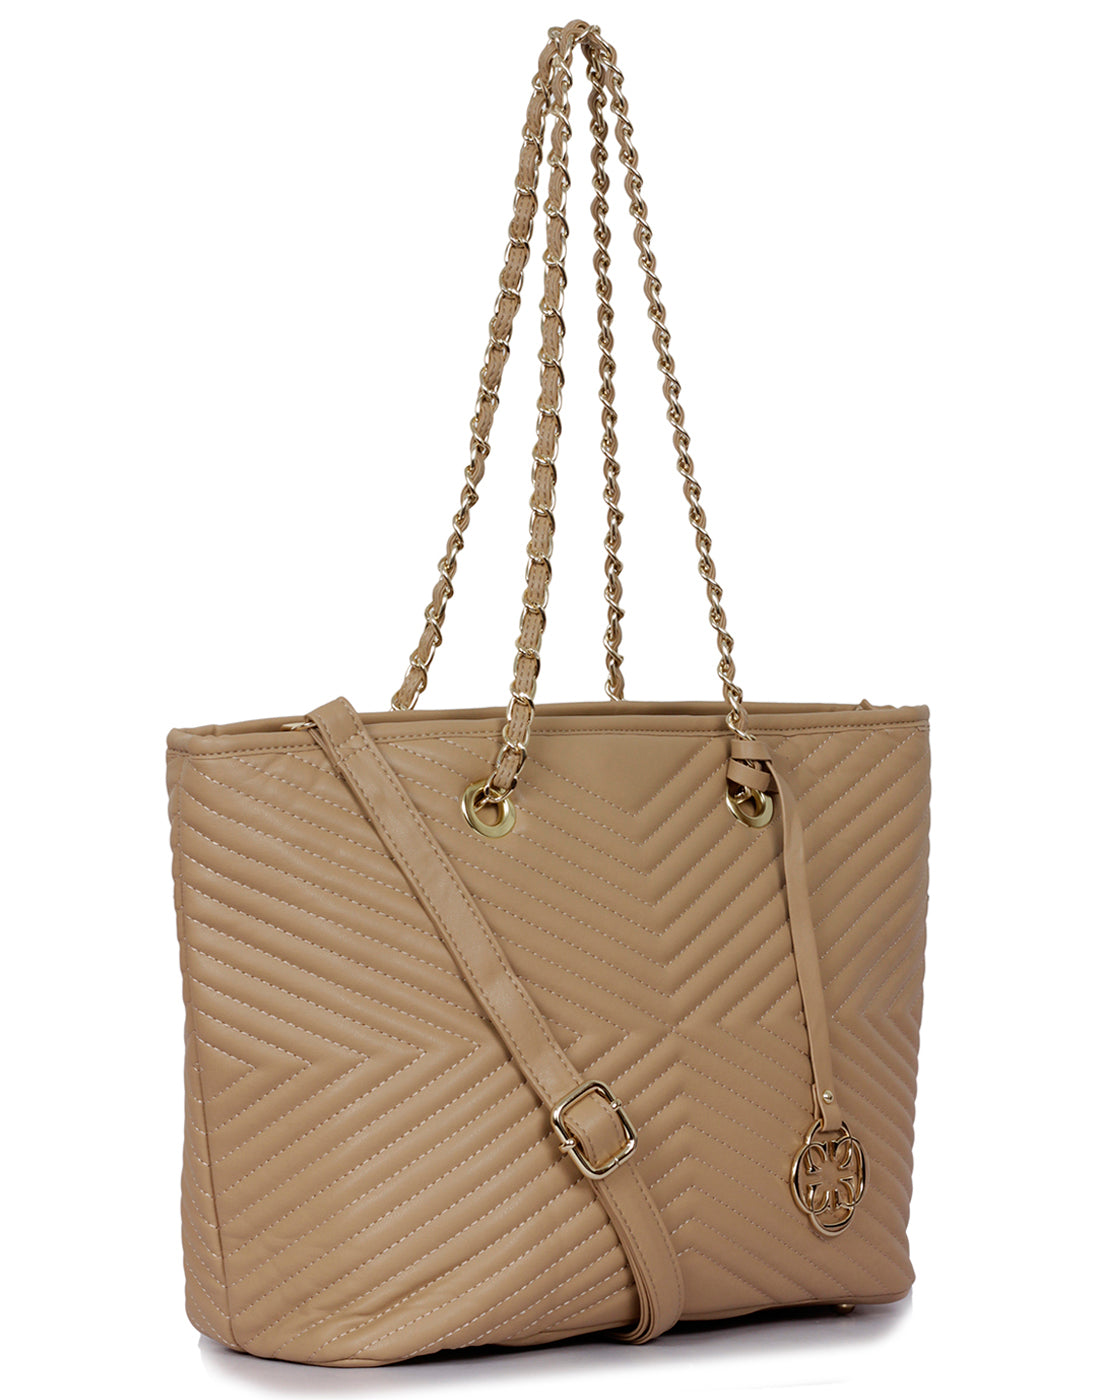 Aella Gold Tone Tote Bag